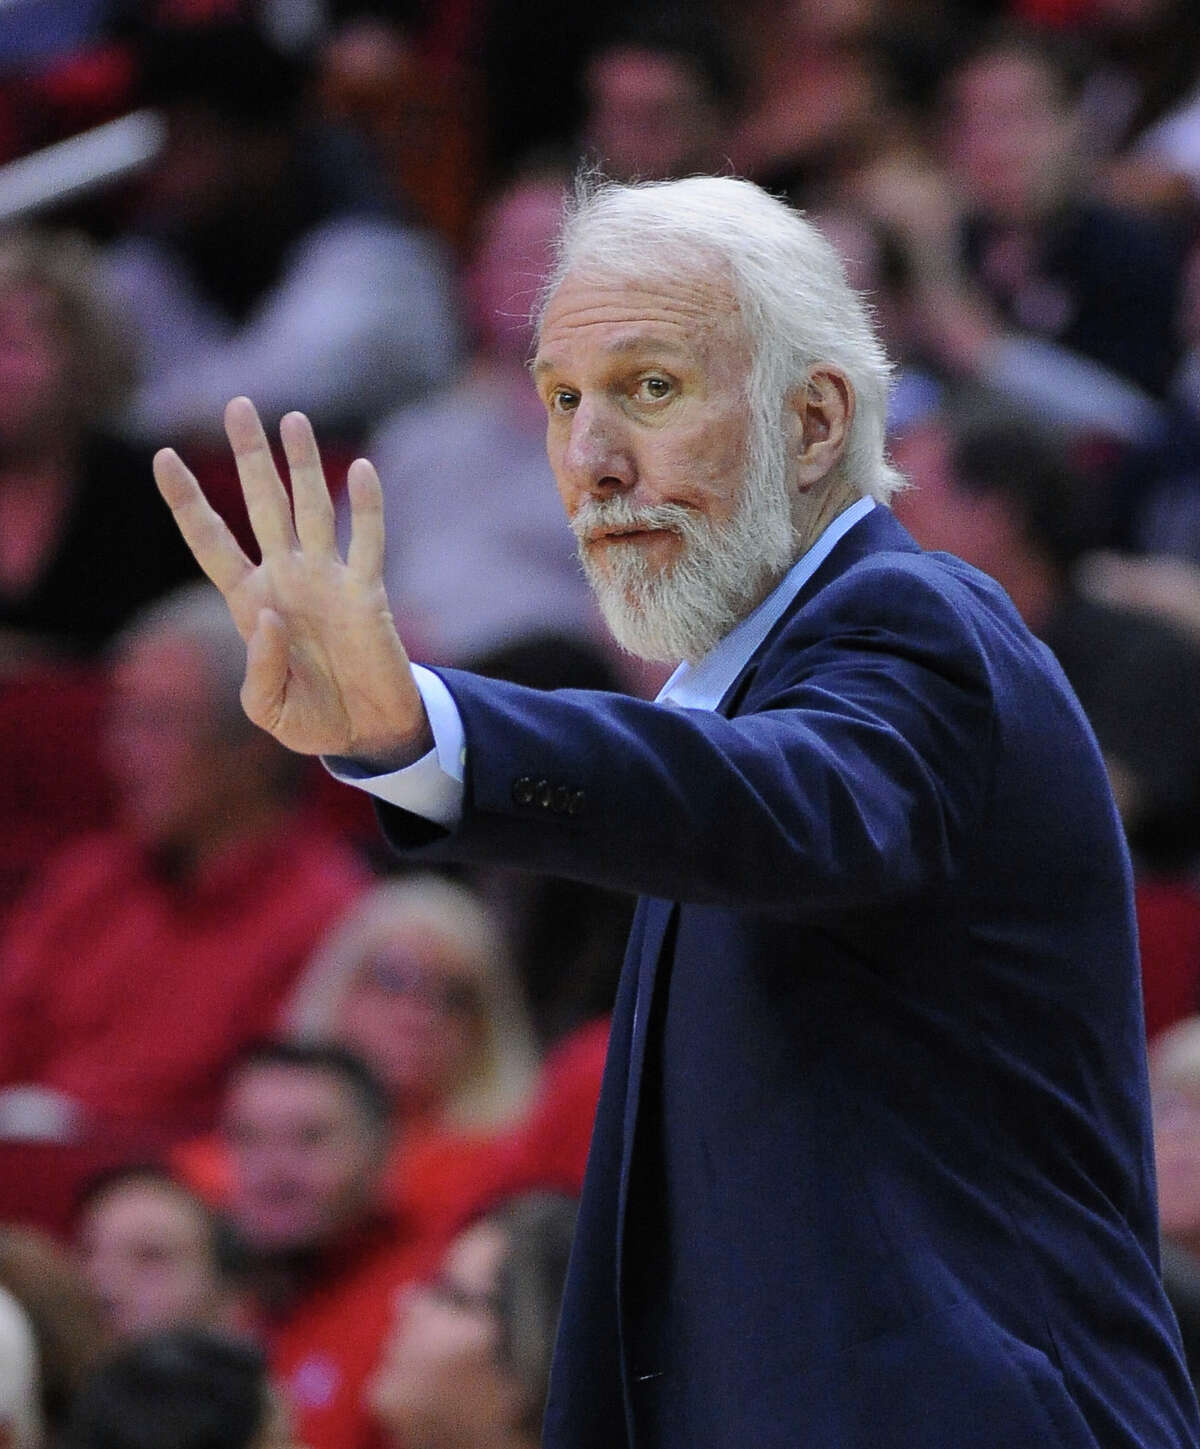 San Antonio Spurs head coach Gregg Popovich calls a play as his team faces the Houston Rockets in the first half of an NBA basketball game on Saturday, Nov. 12, 2016, in Houston. (AP Photo/George Bridges)